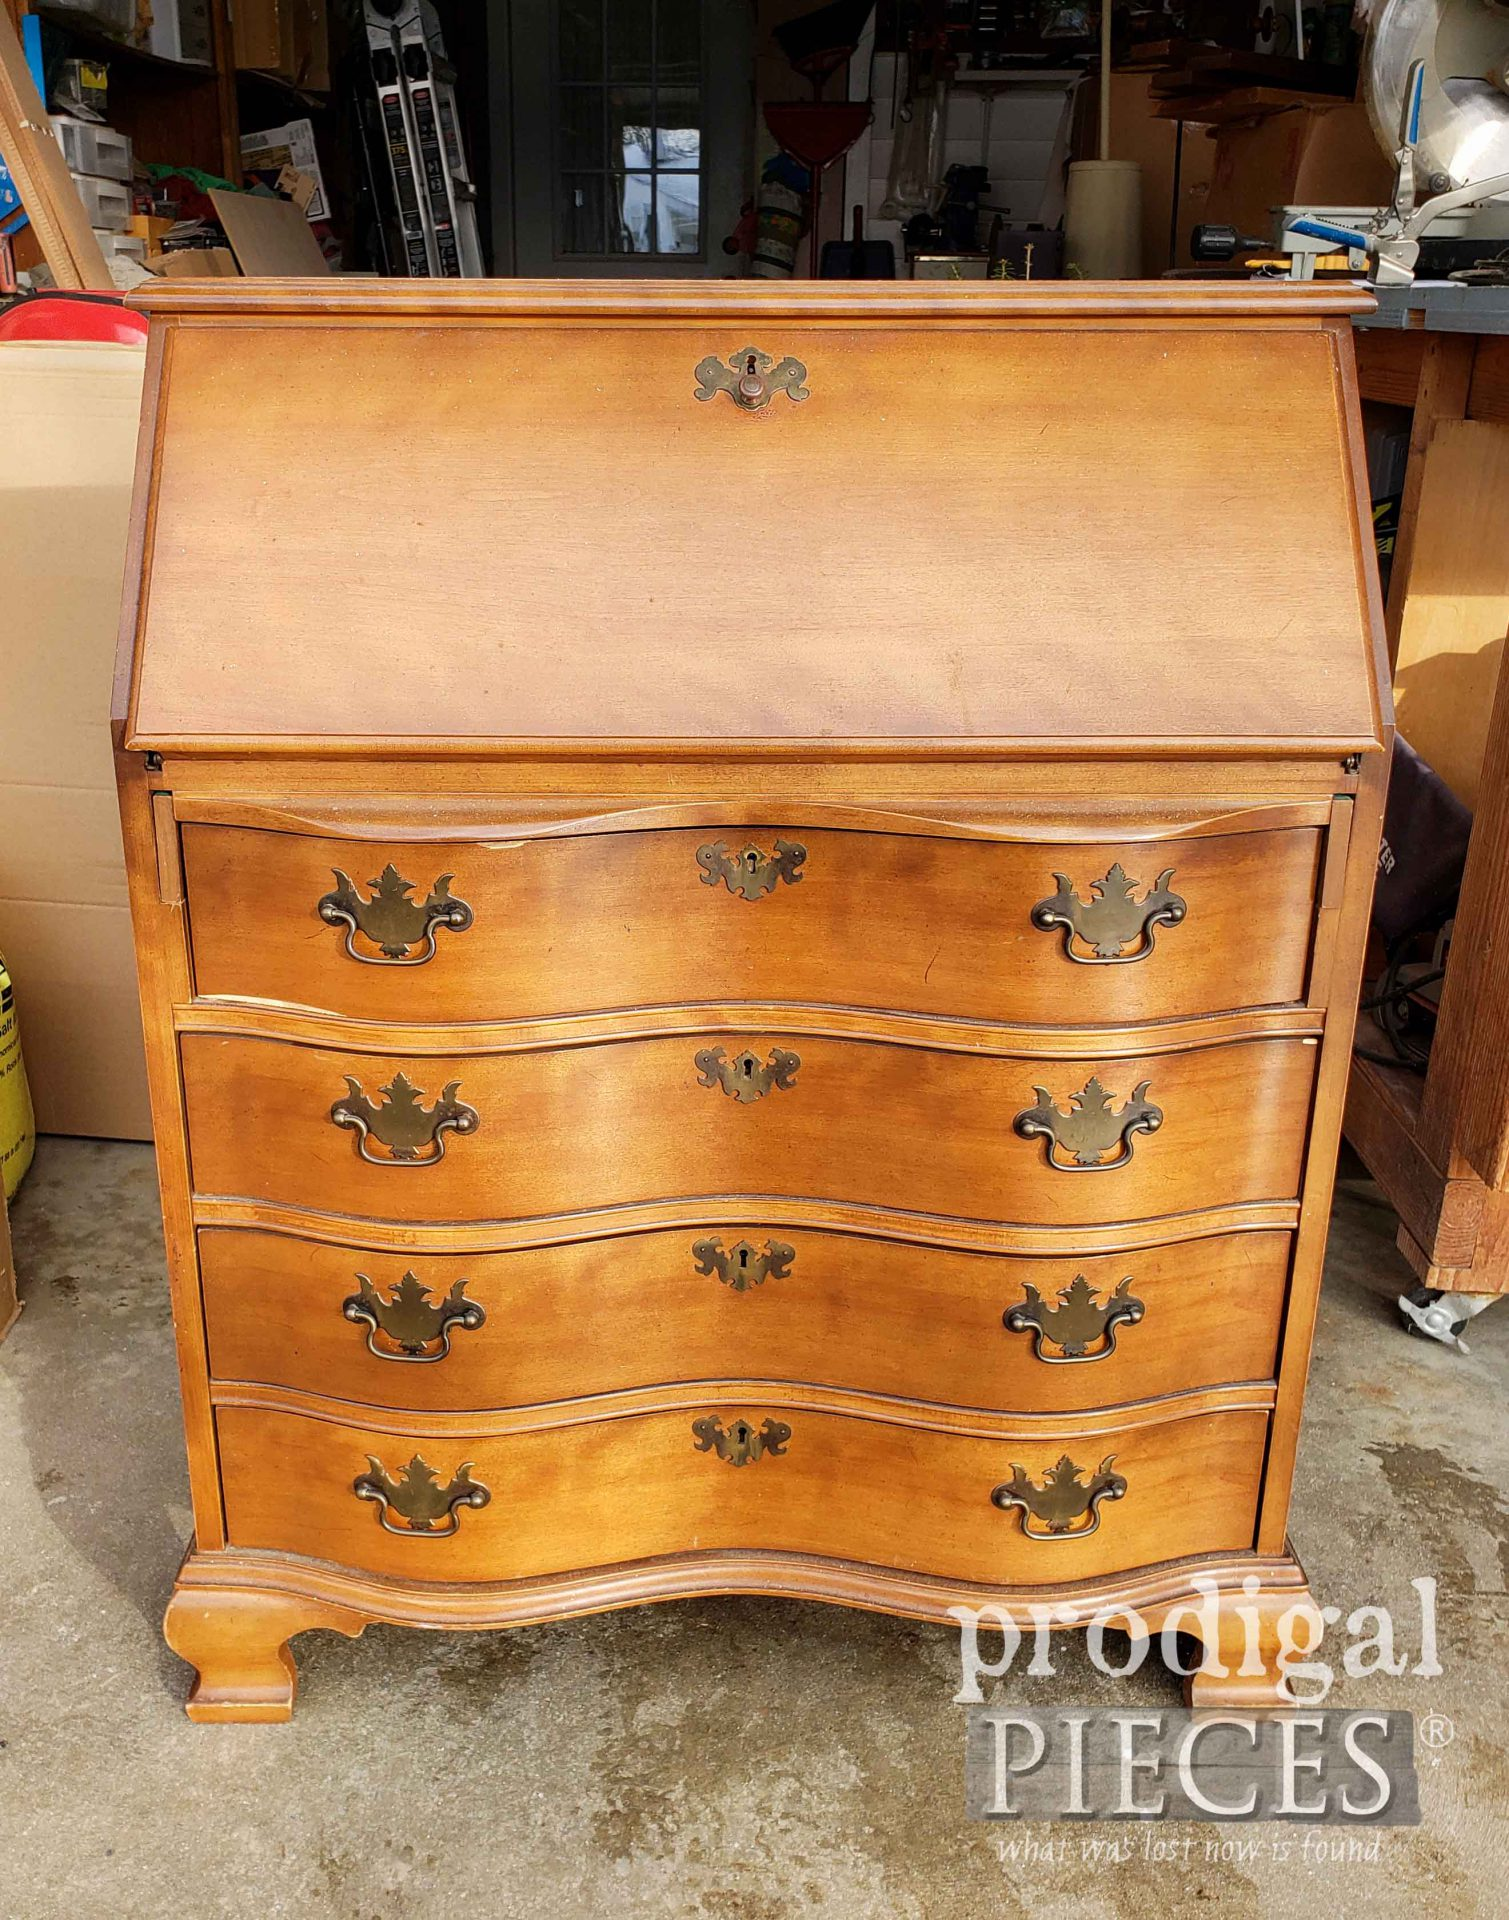 Vintage Secretary Desk Before Makeover by Larissa of Prodigal Pieces | prodigalpieces.com #prodigalpieces